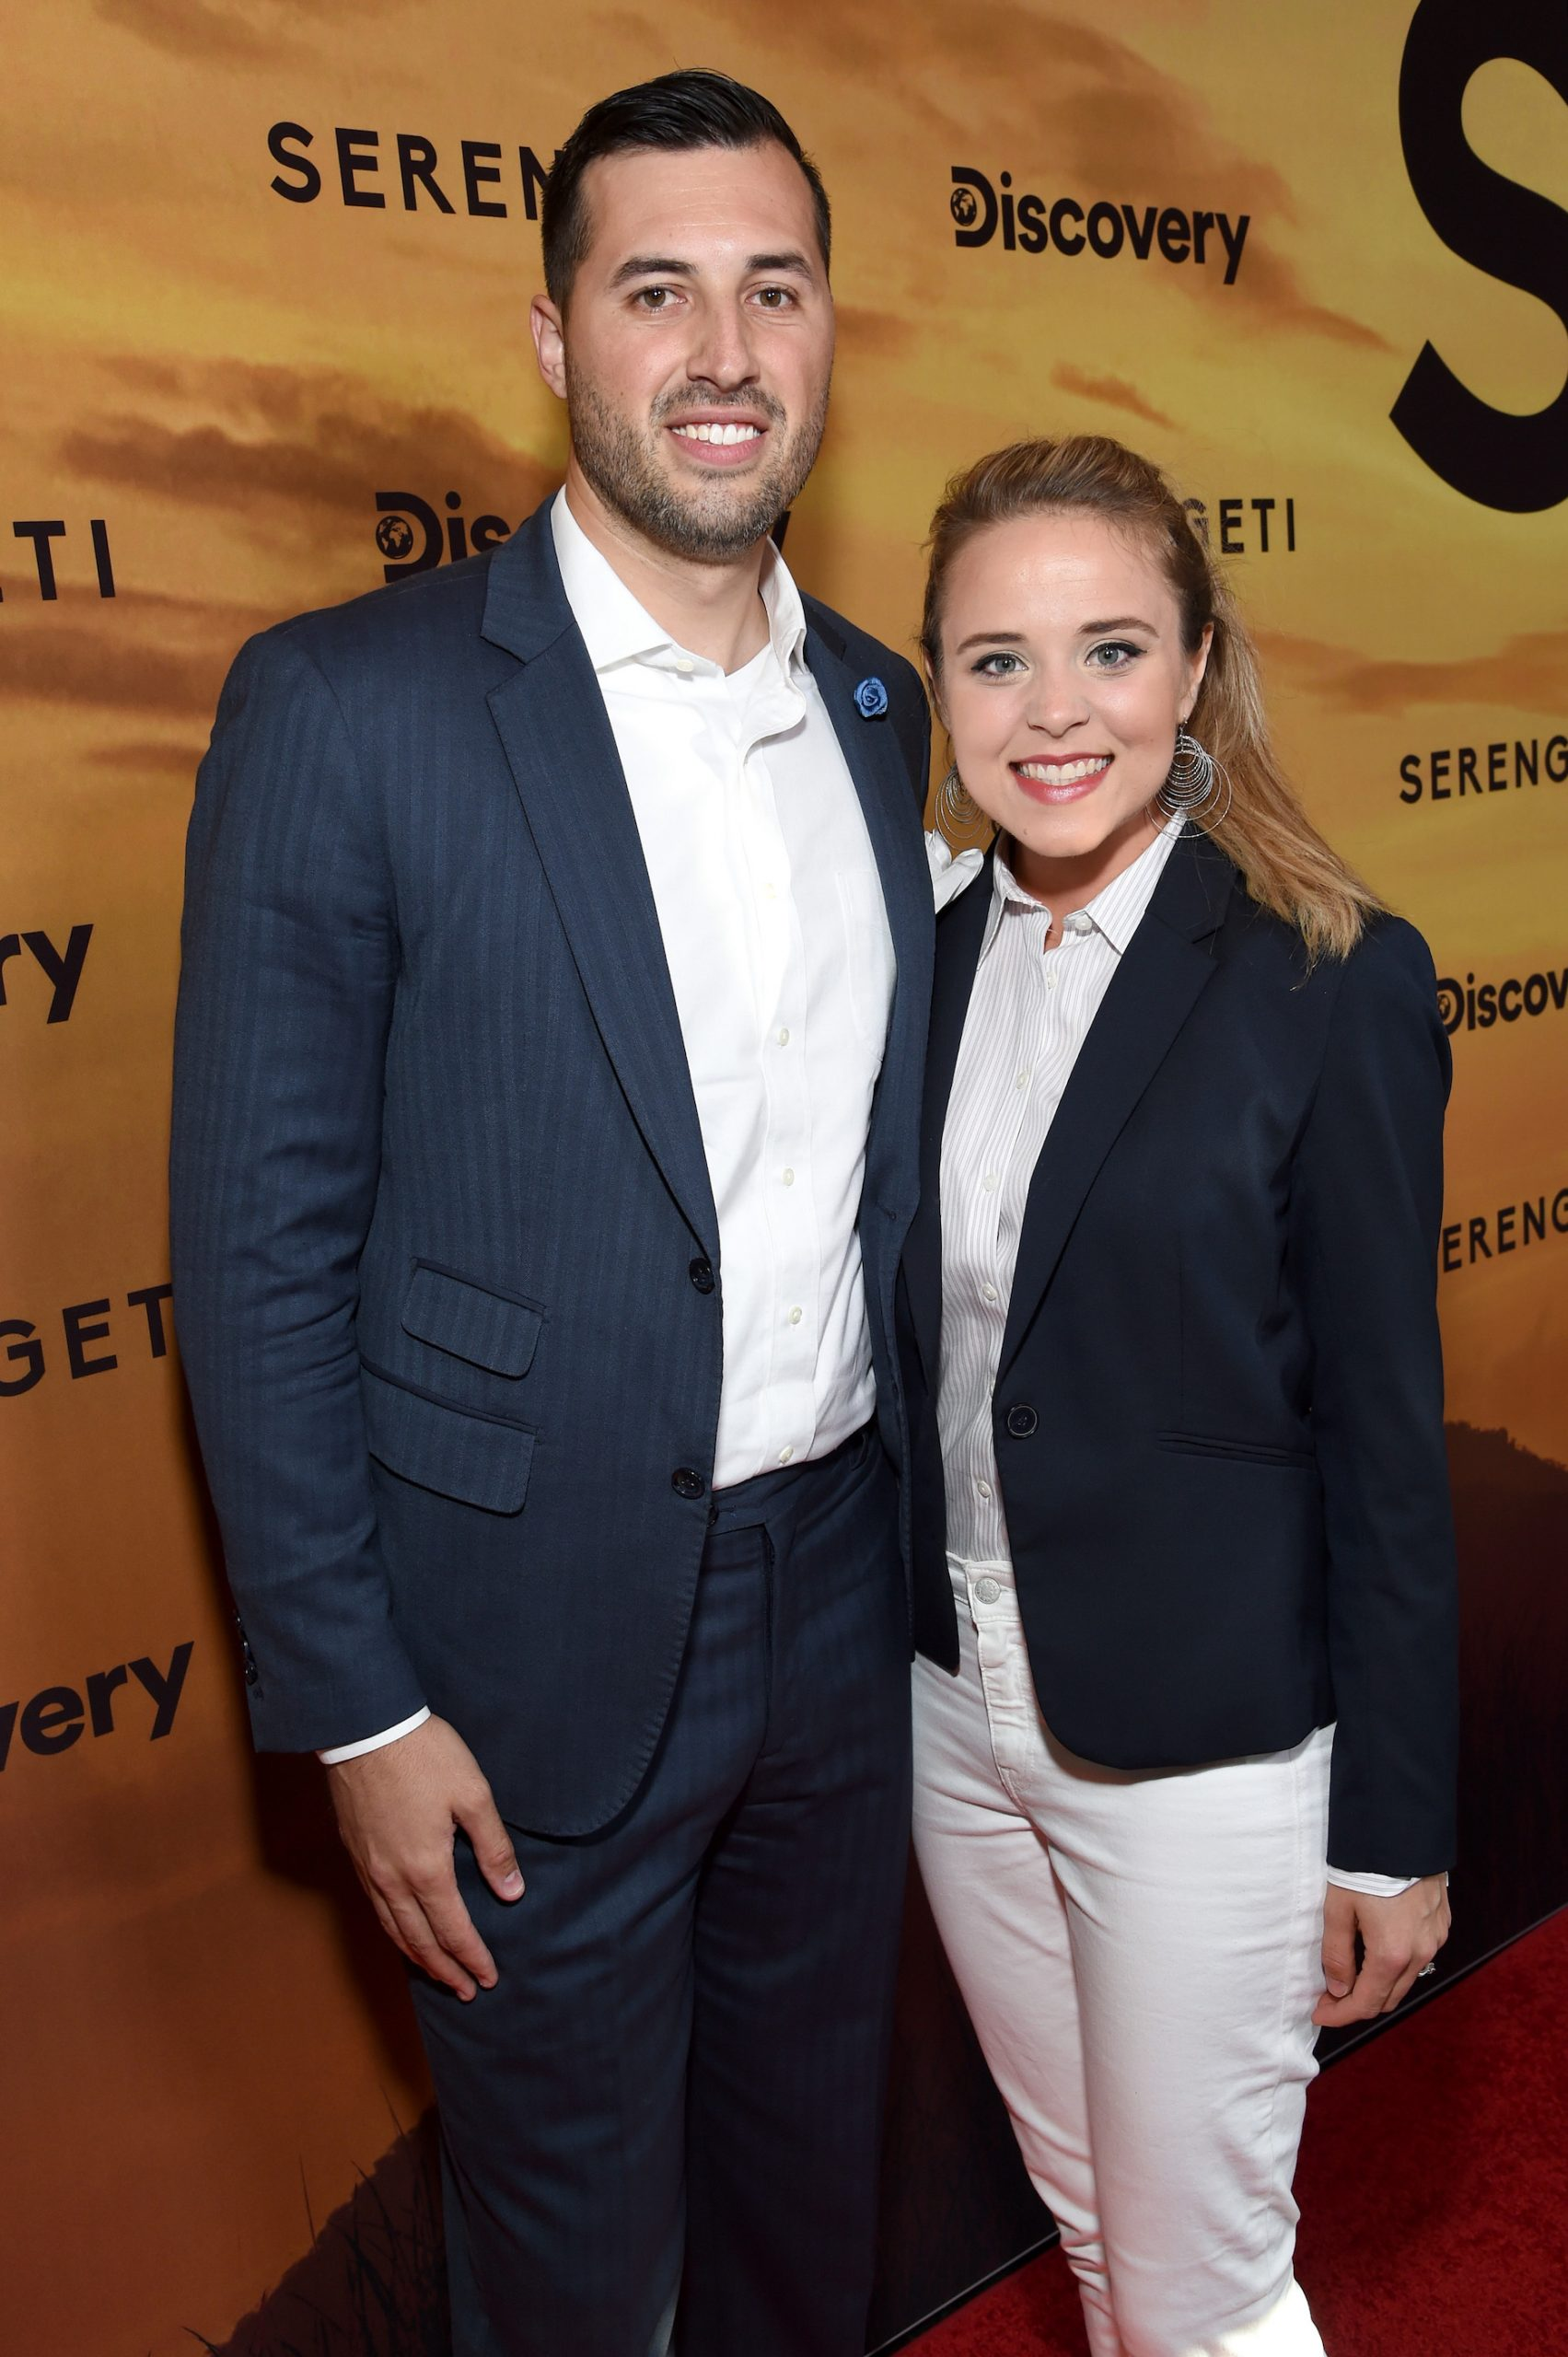 Jeremy Vuolo, wearing a suit, and Jinger Duggar, wearing white pants and blue jacket, at a Discovery Channel event.